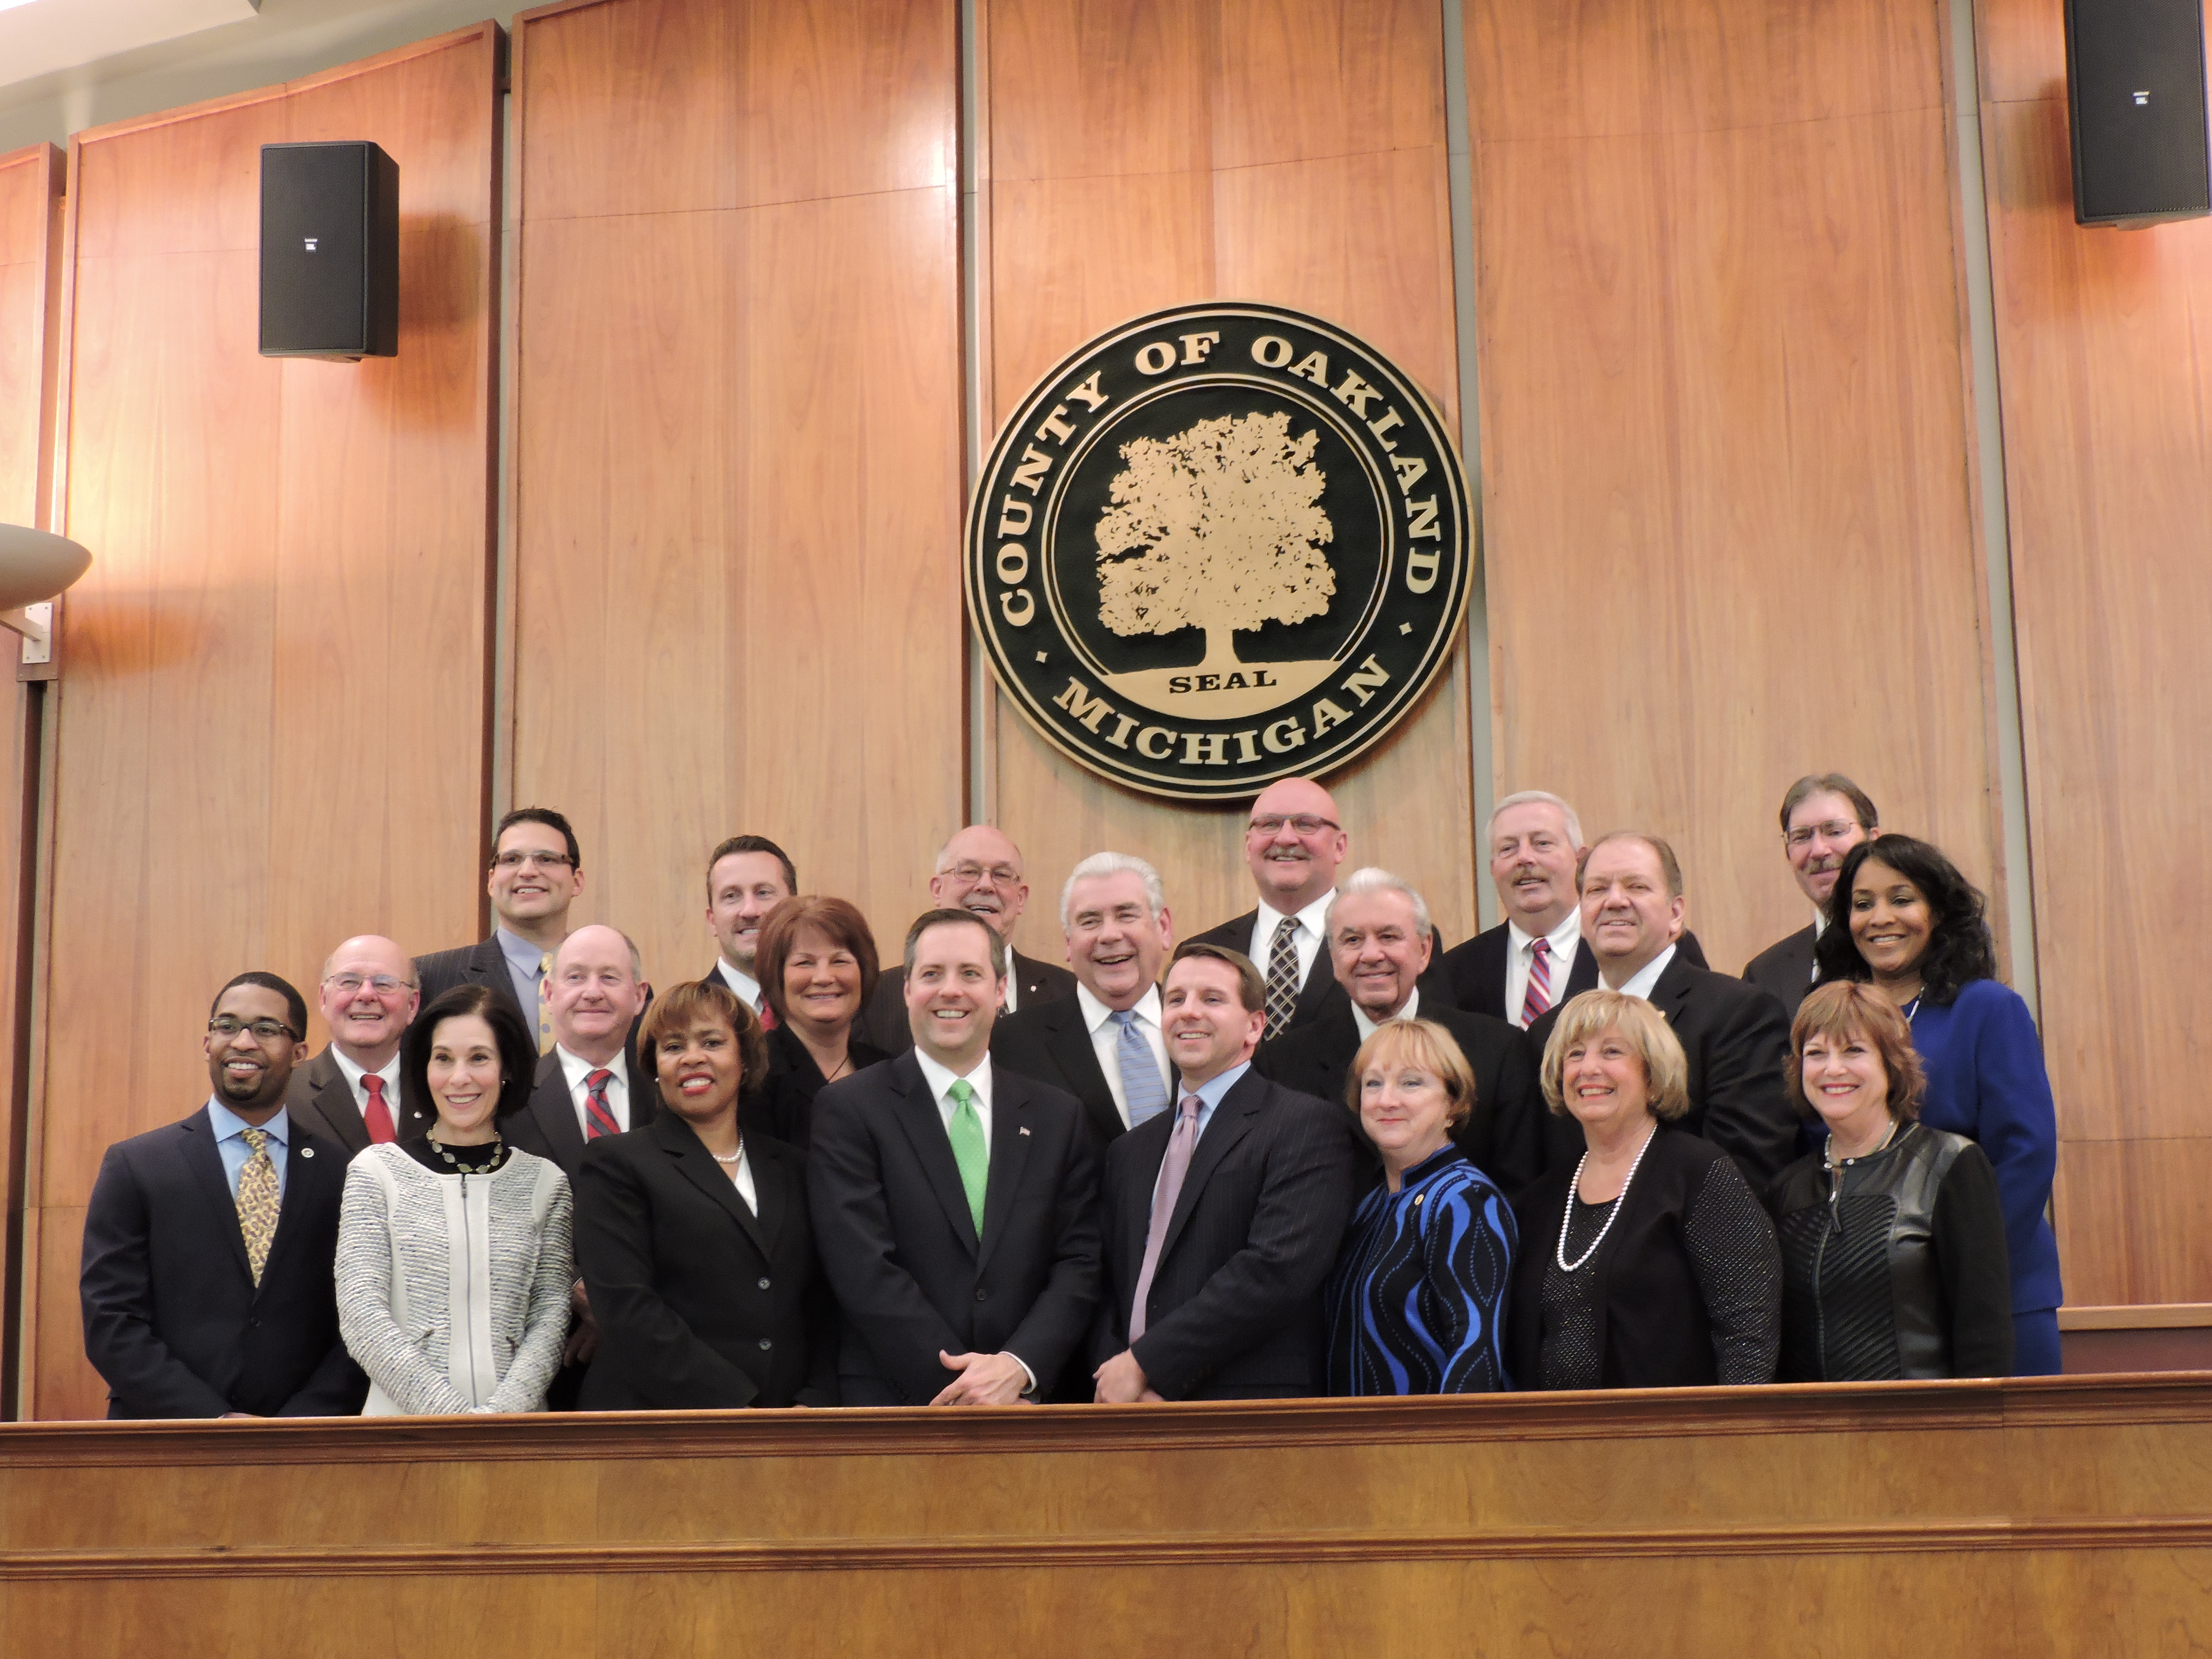 2013 Oakland County Board of Commissioners